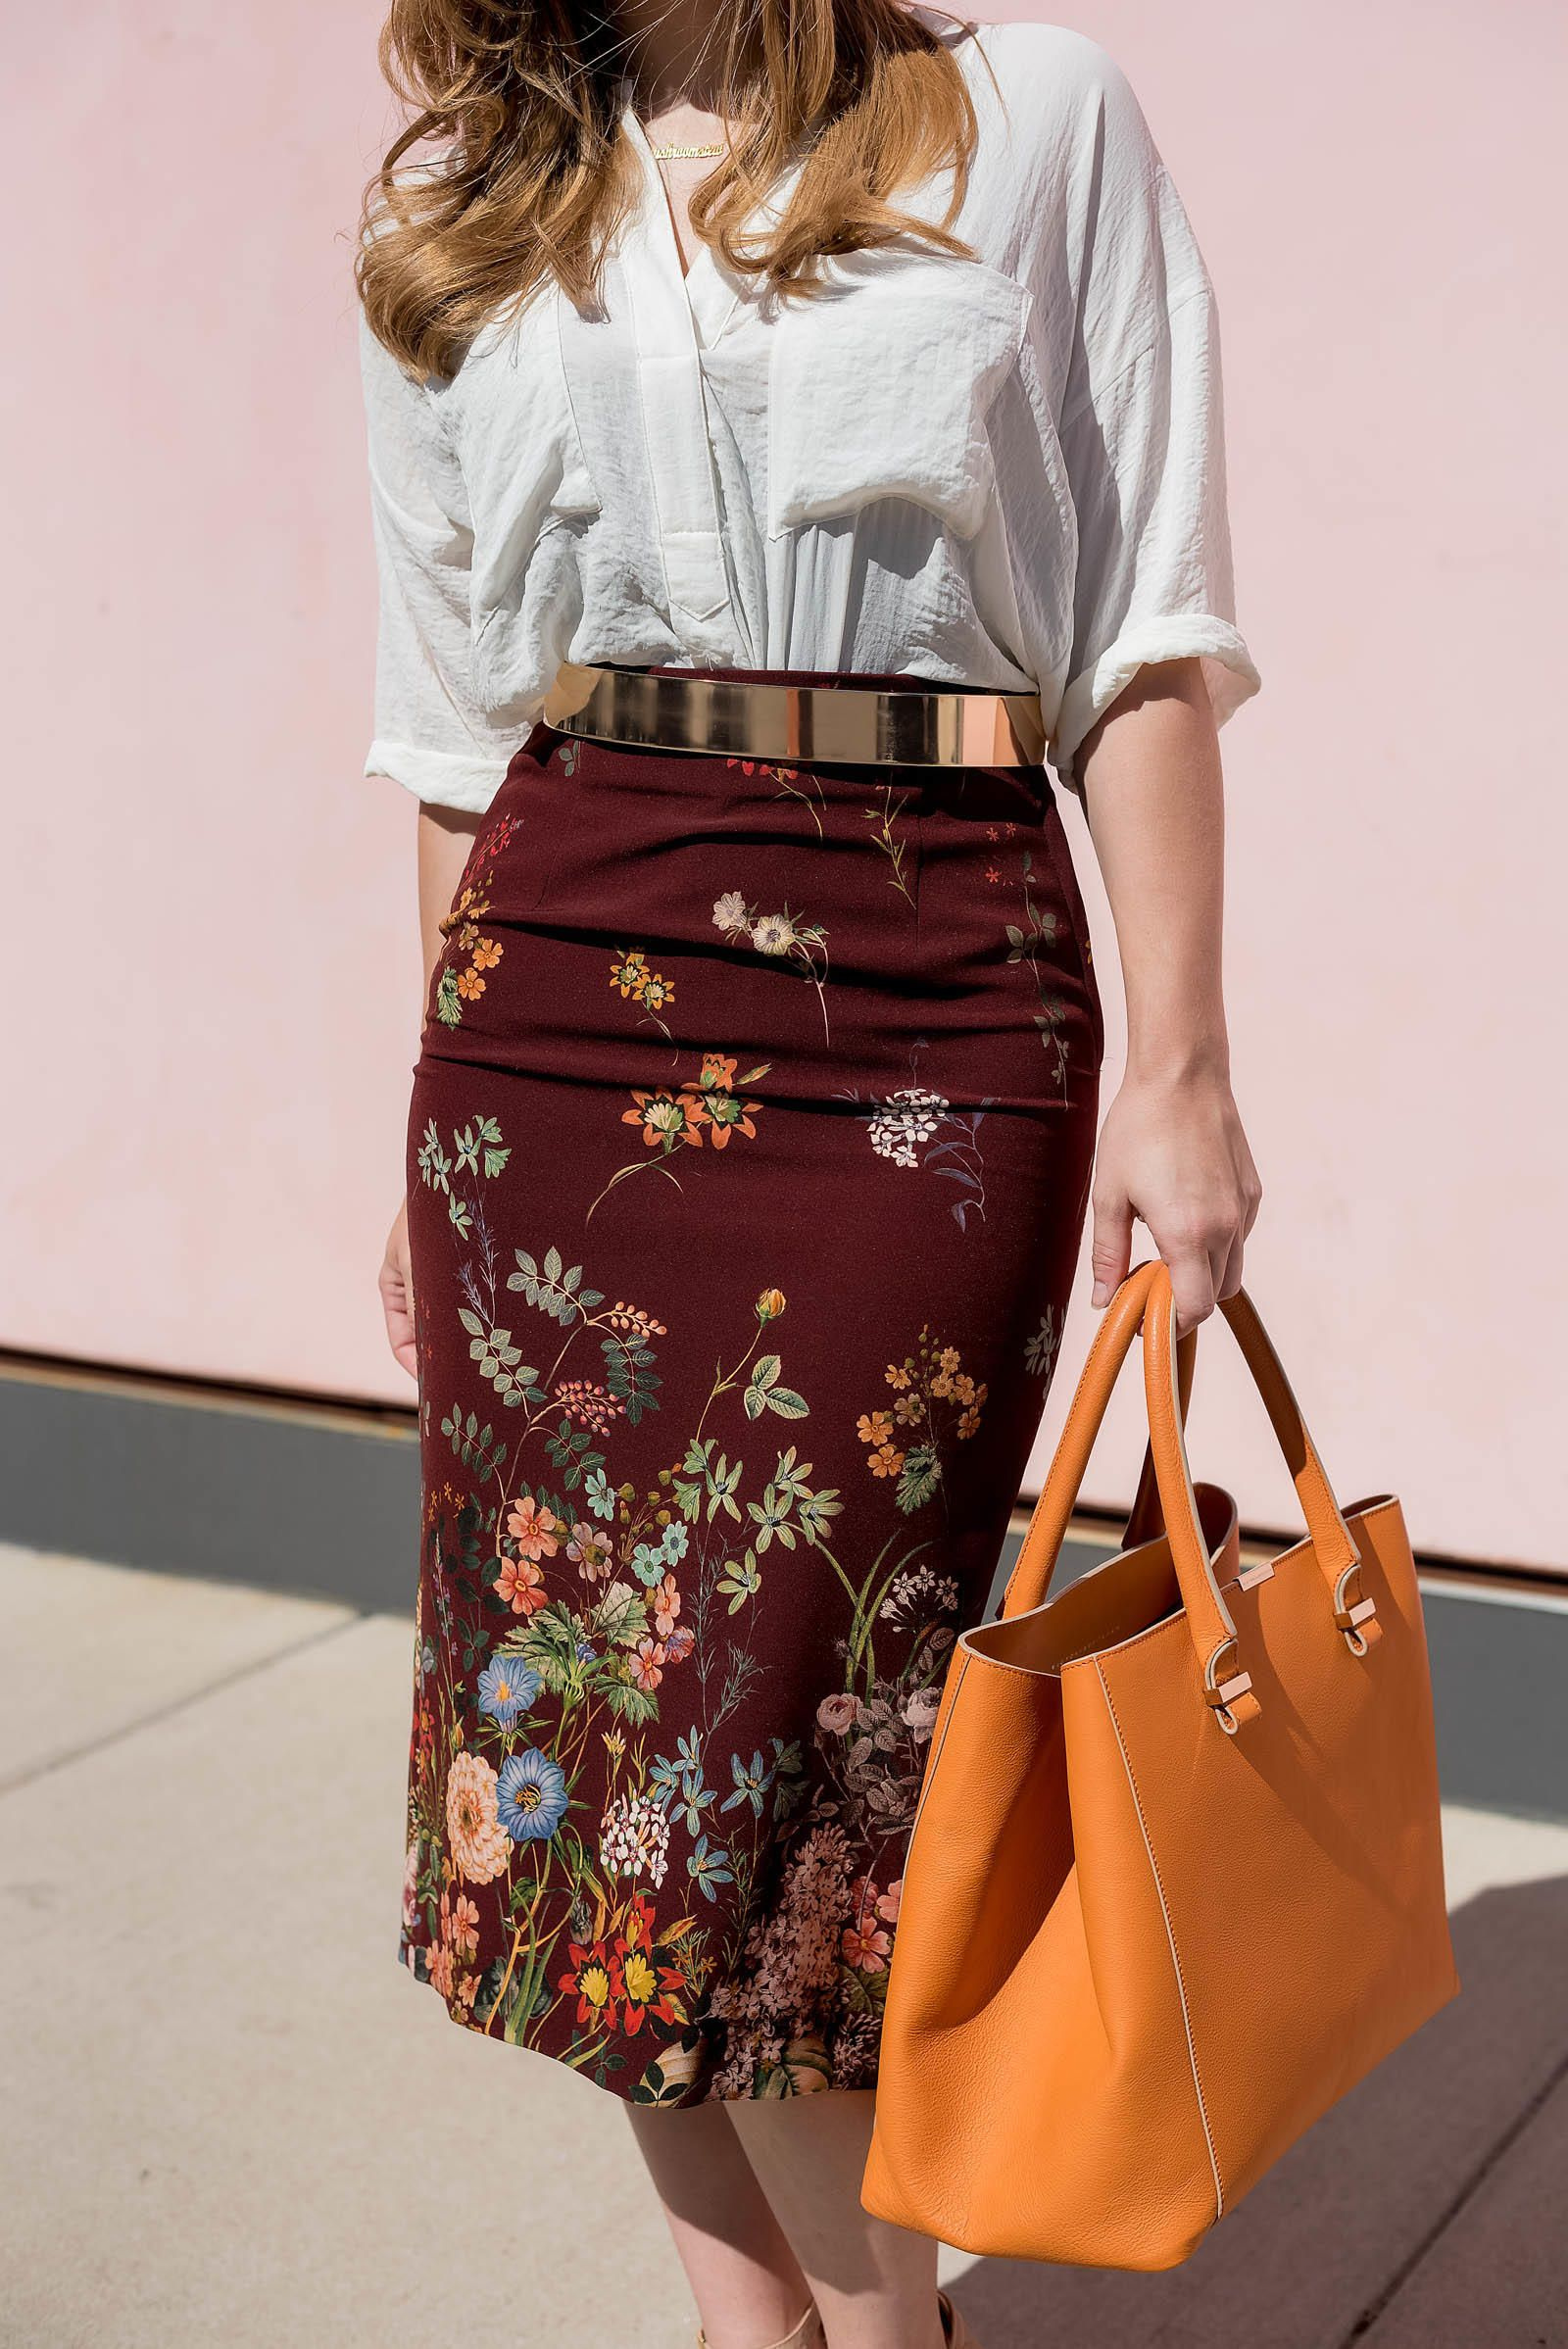 Floral Print Tube Skirt with Bright Coloured Top